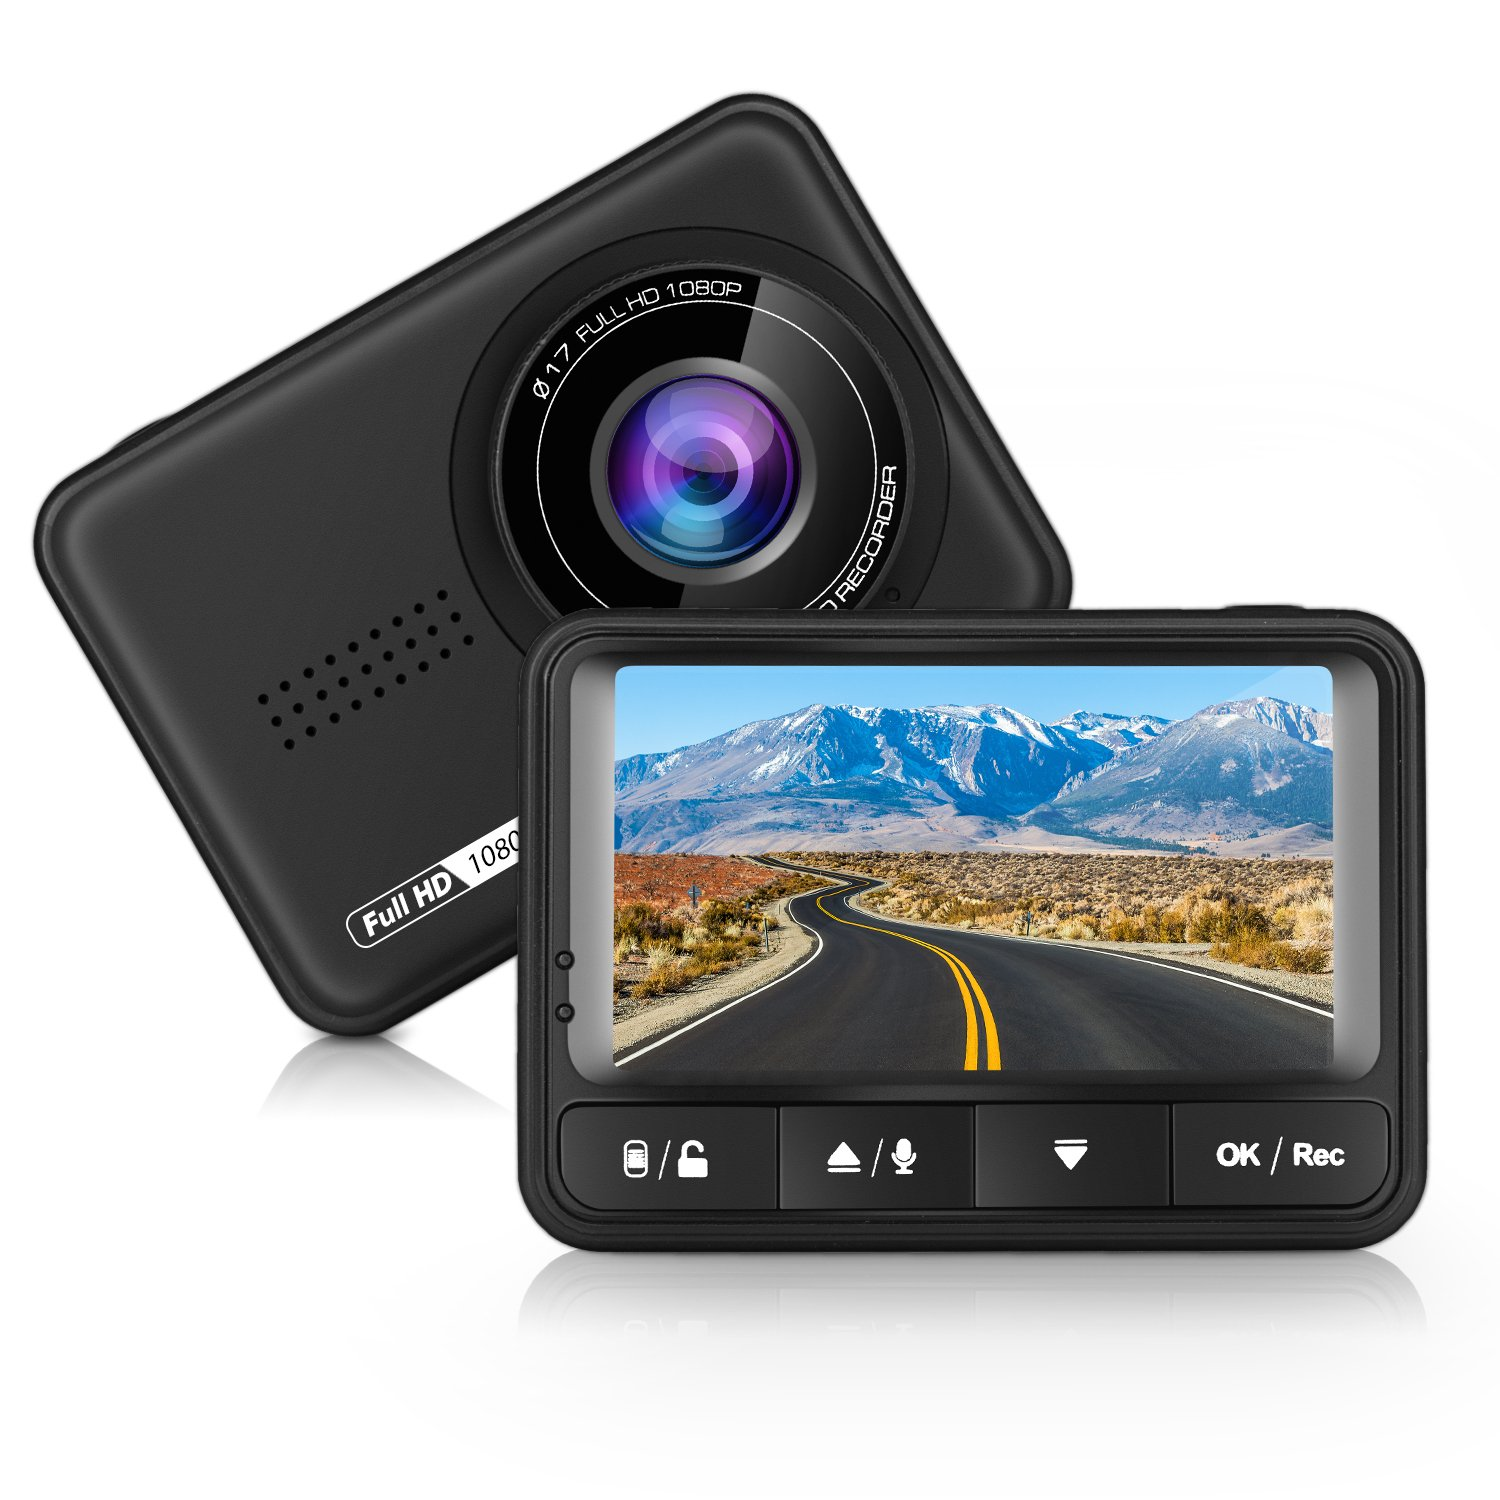 Camé ra de Voiture, Panlelo D2 Dash Cam L'enregistreur de Conduite Full HD 1080P 12mp DVR 170° Grand Angle, DASHCAM Enregistreur, WDR, Enregistrement en Boucle, Dé tection de Mouvement Détection de Mouvement D015